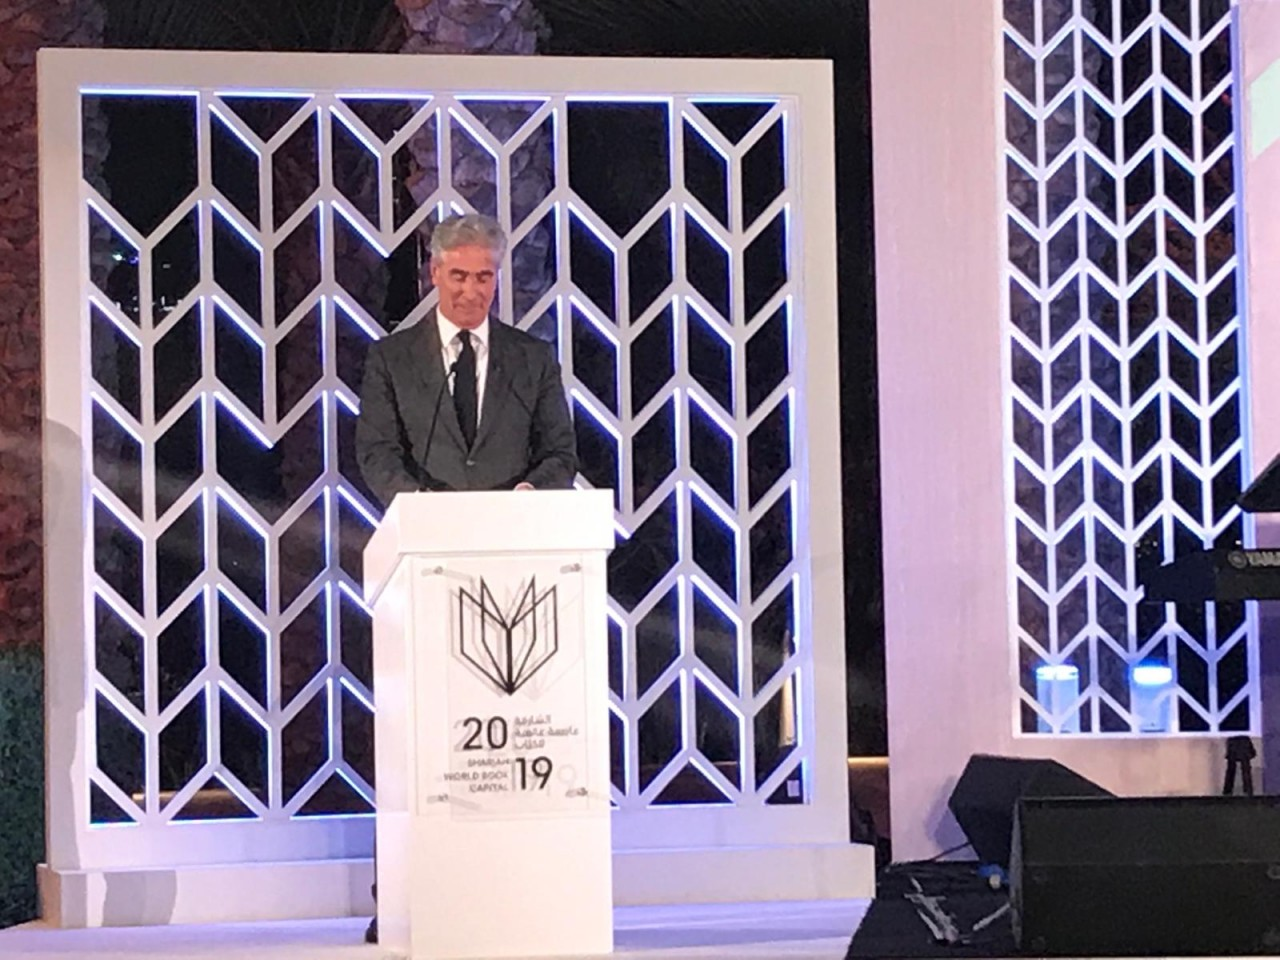 IFLA Secretary-General Gerald Leitner speaking at a dinner ahead of the opening of Sharjah, World Book Capital 2019